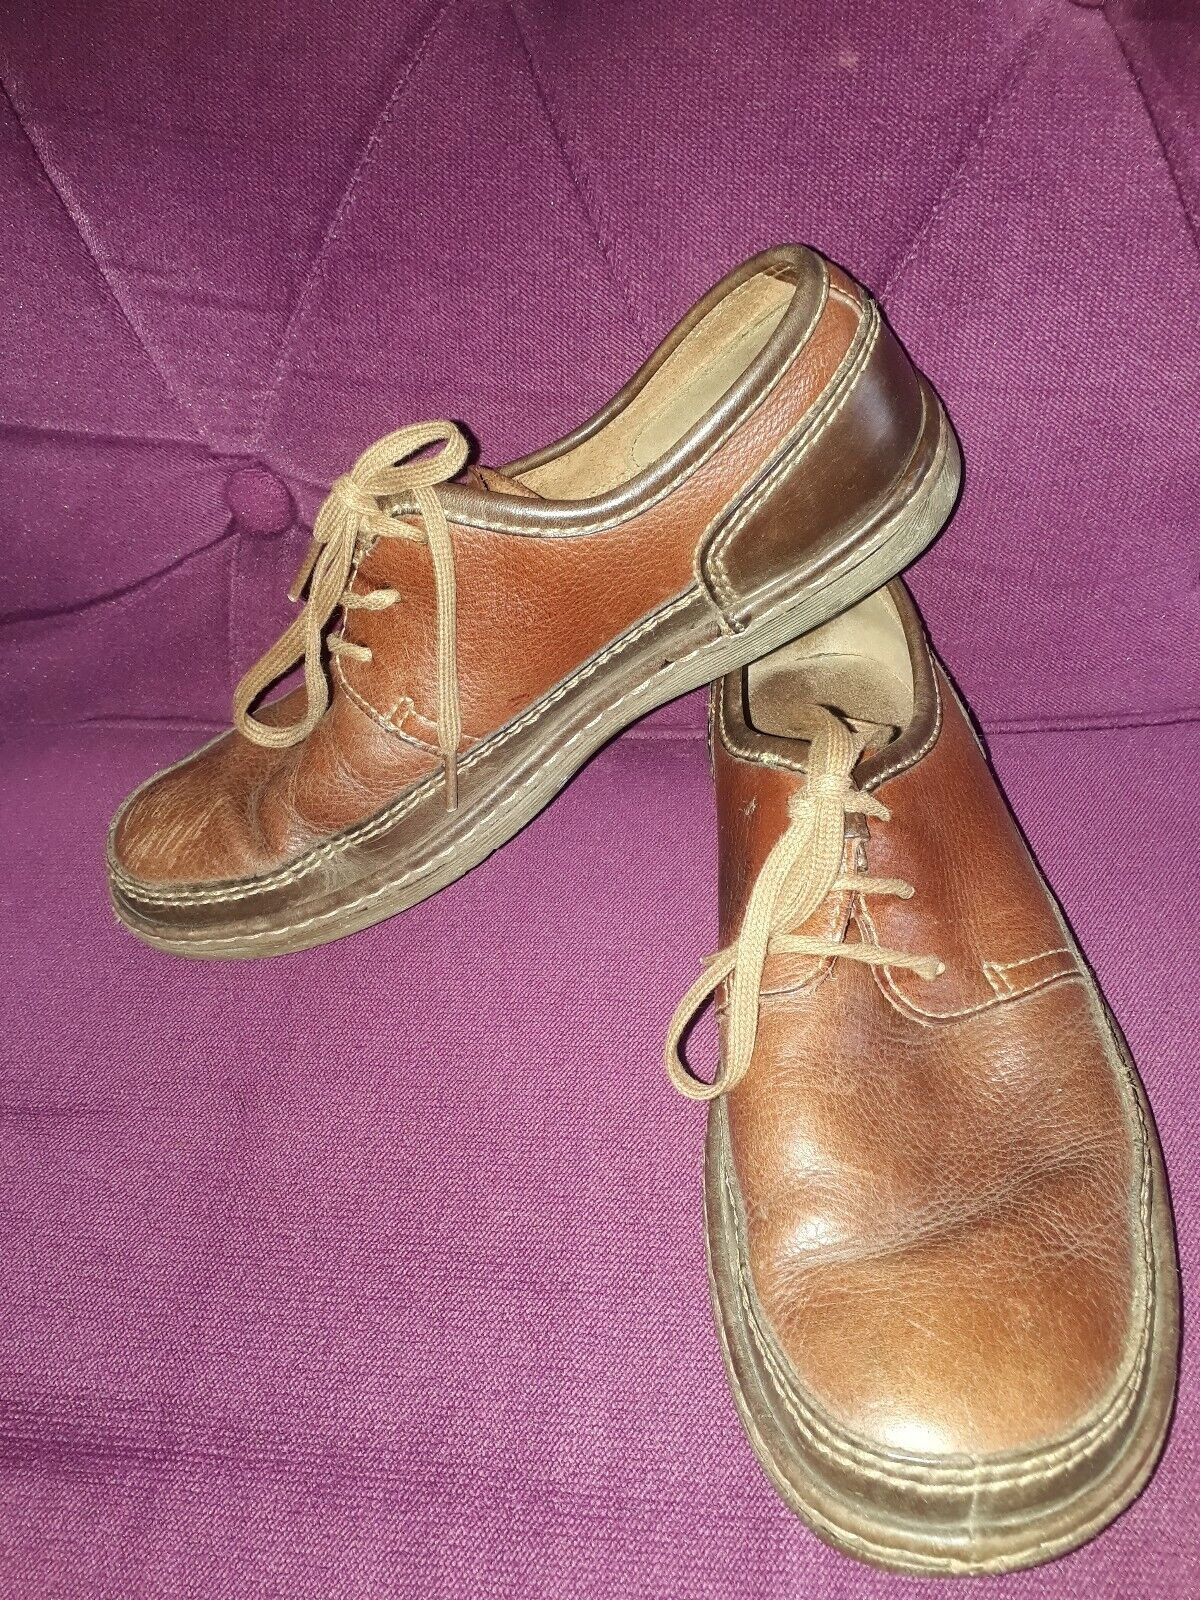 CLARKS LEATHER 2-TONE BROWN LACE UP SHOES SIZE 8.5 G EU 42.5